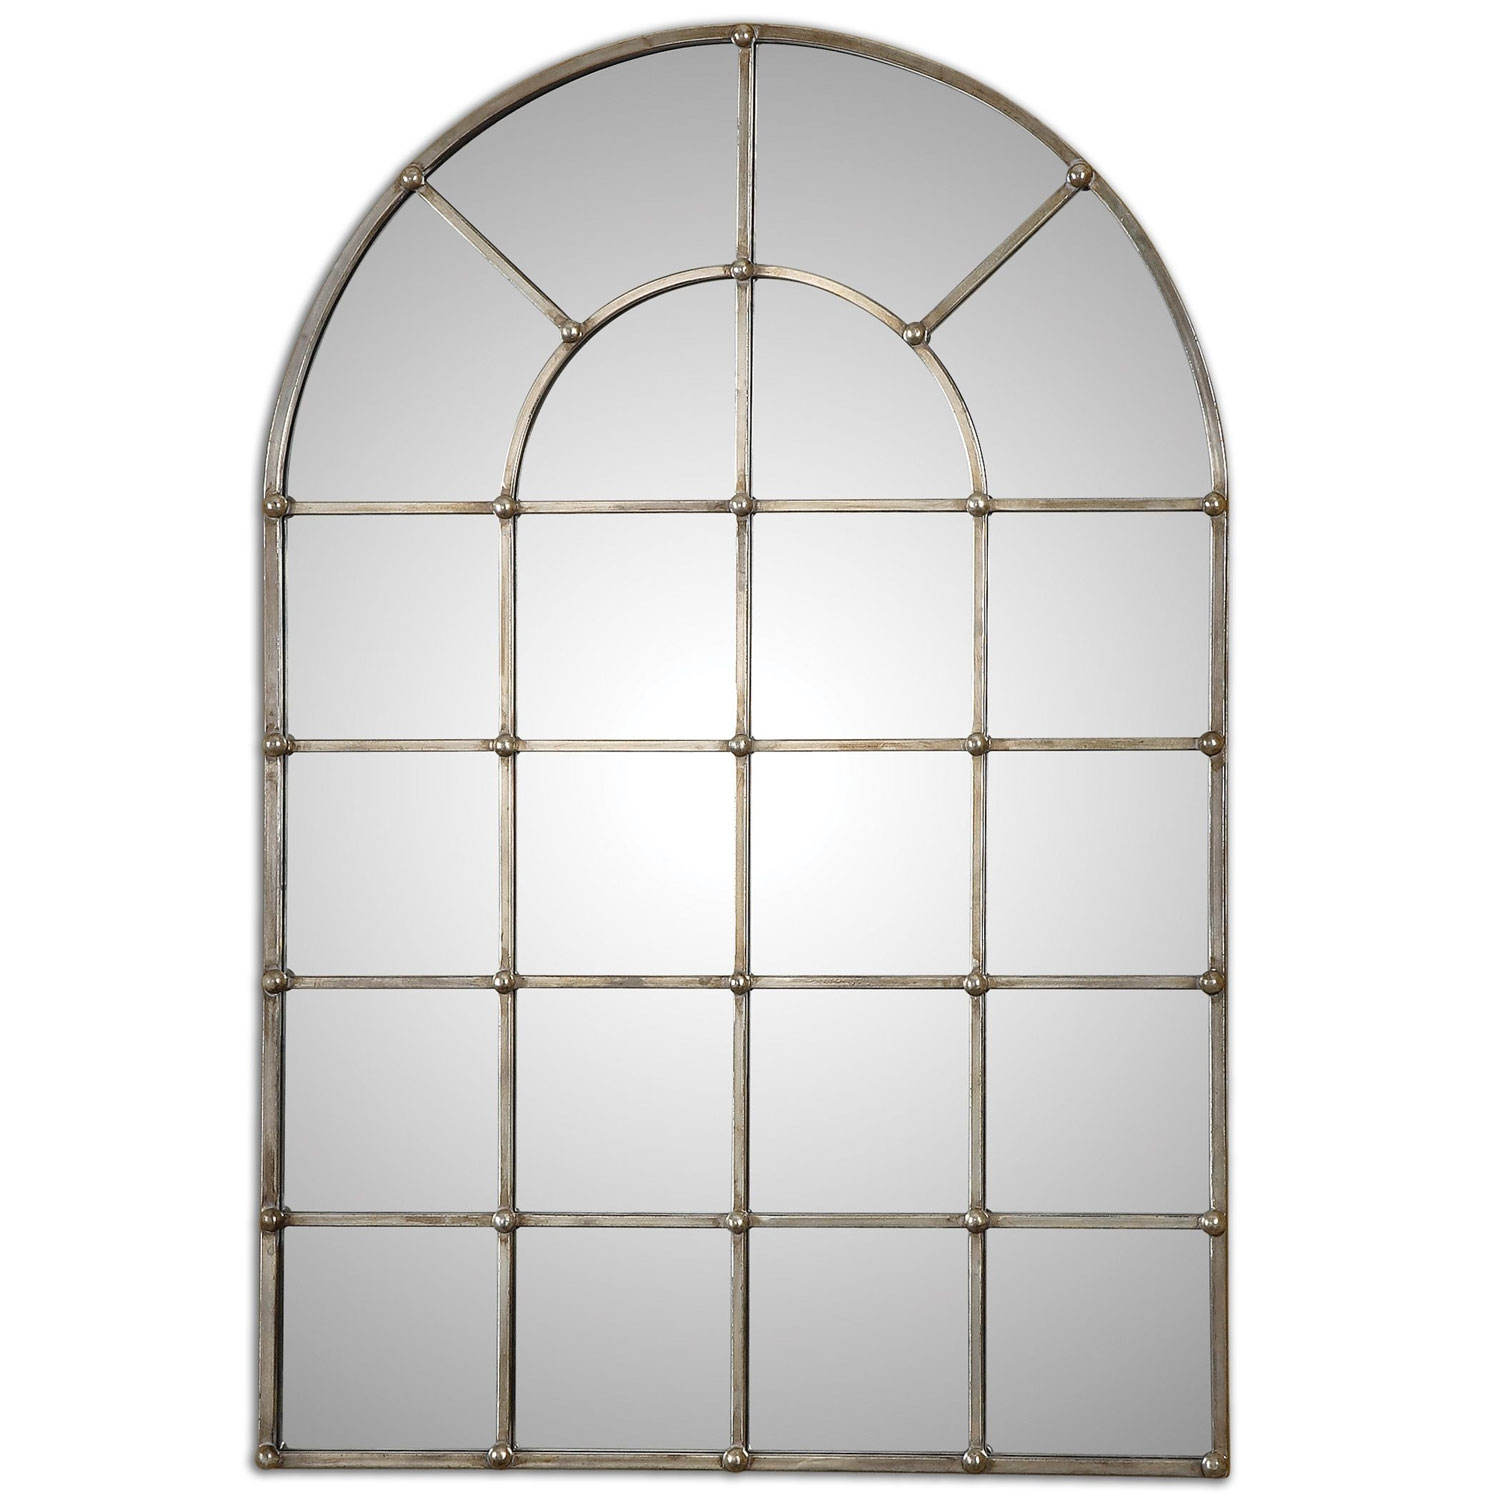 Modest Design Arched Wall Mirror Pretty Ideas Arch Mirrors On With Regard To Arched Wall Mirror (Image 12 of 15)